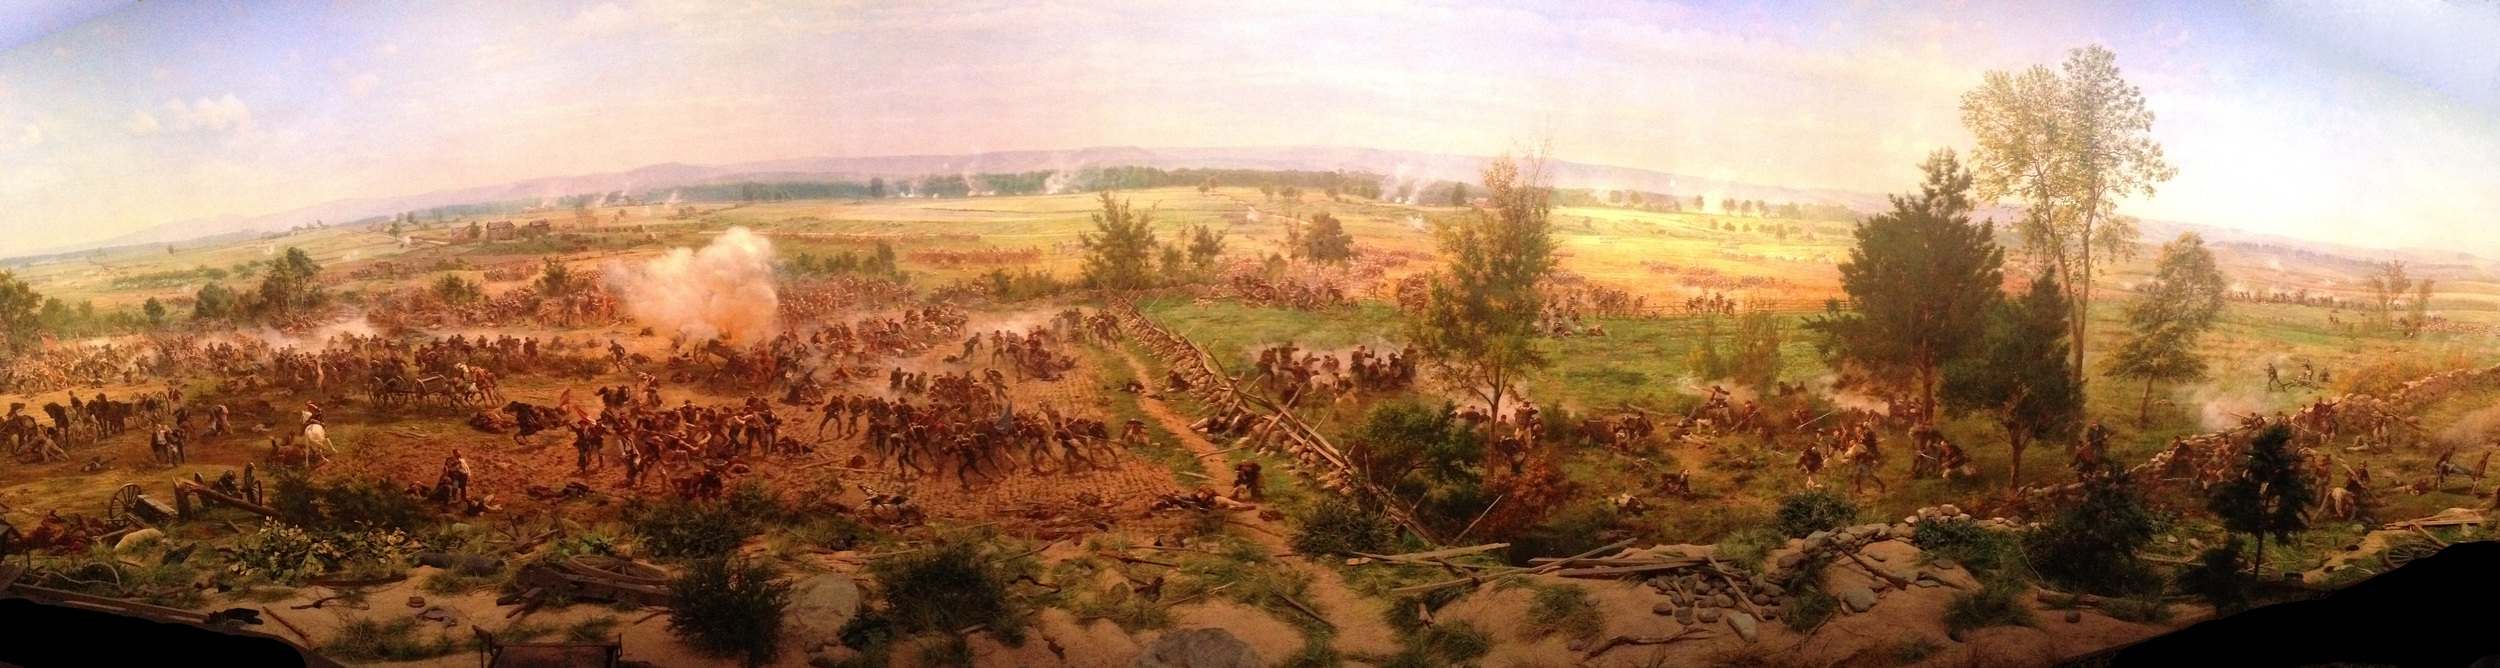 """""""Gettysburg Cyclorama"""" made in  1883 by the French artist  Paul Philippoteaux  depicting """" Pickett's Charge """". One of the paintings that inspire me for making the visuals and game mechanics of Ultimate General: Gettysburg."""